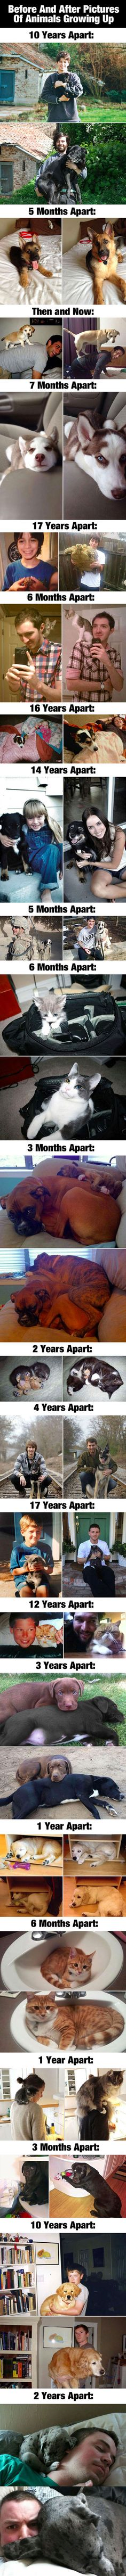 Before and after photos of animals growing up.